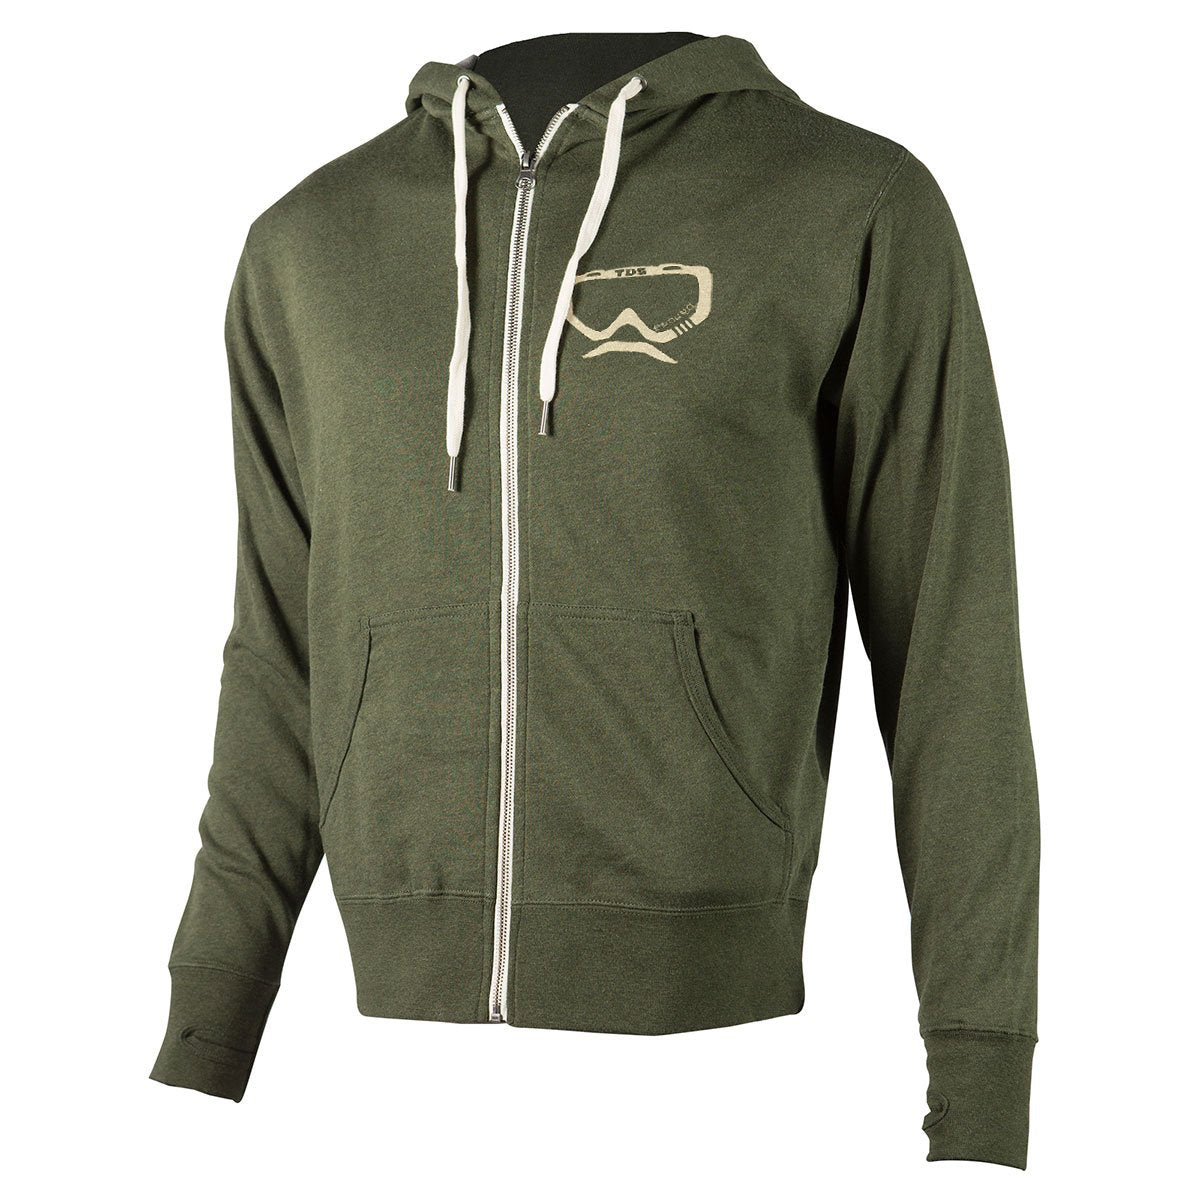 Fasthouse - TDS Zip Up Hoodie - Olive Heather